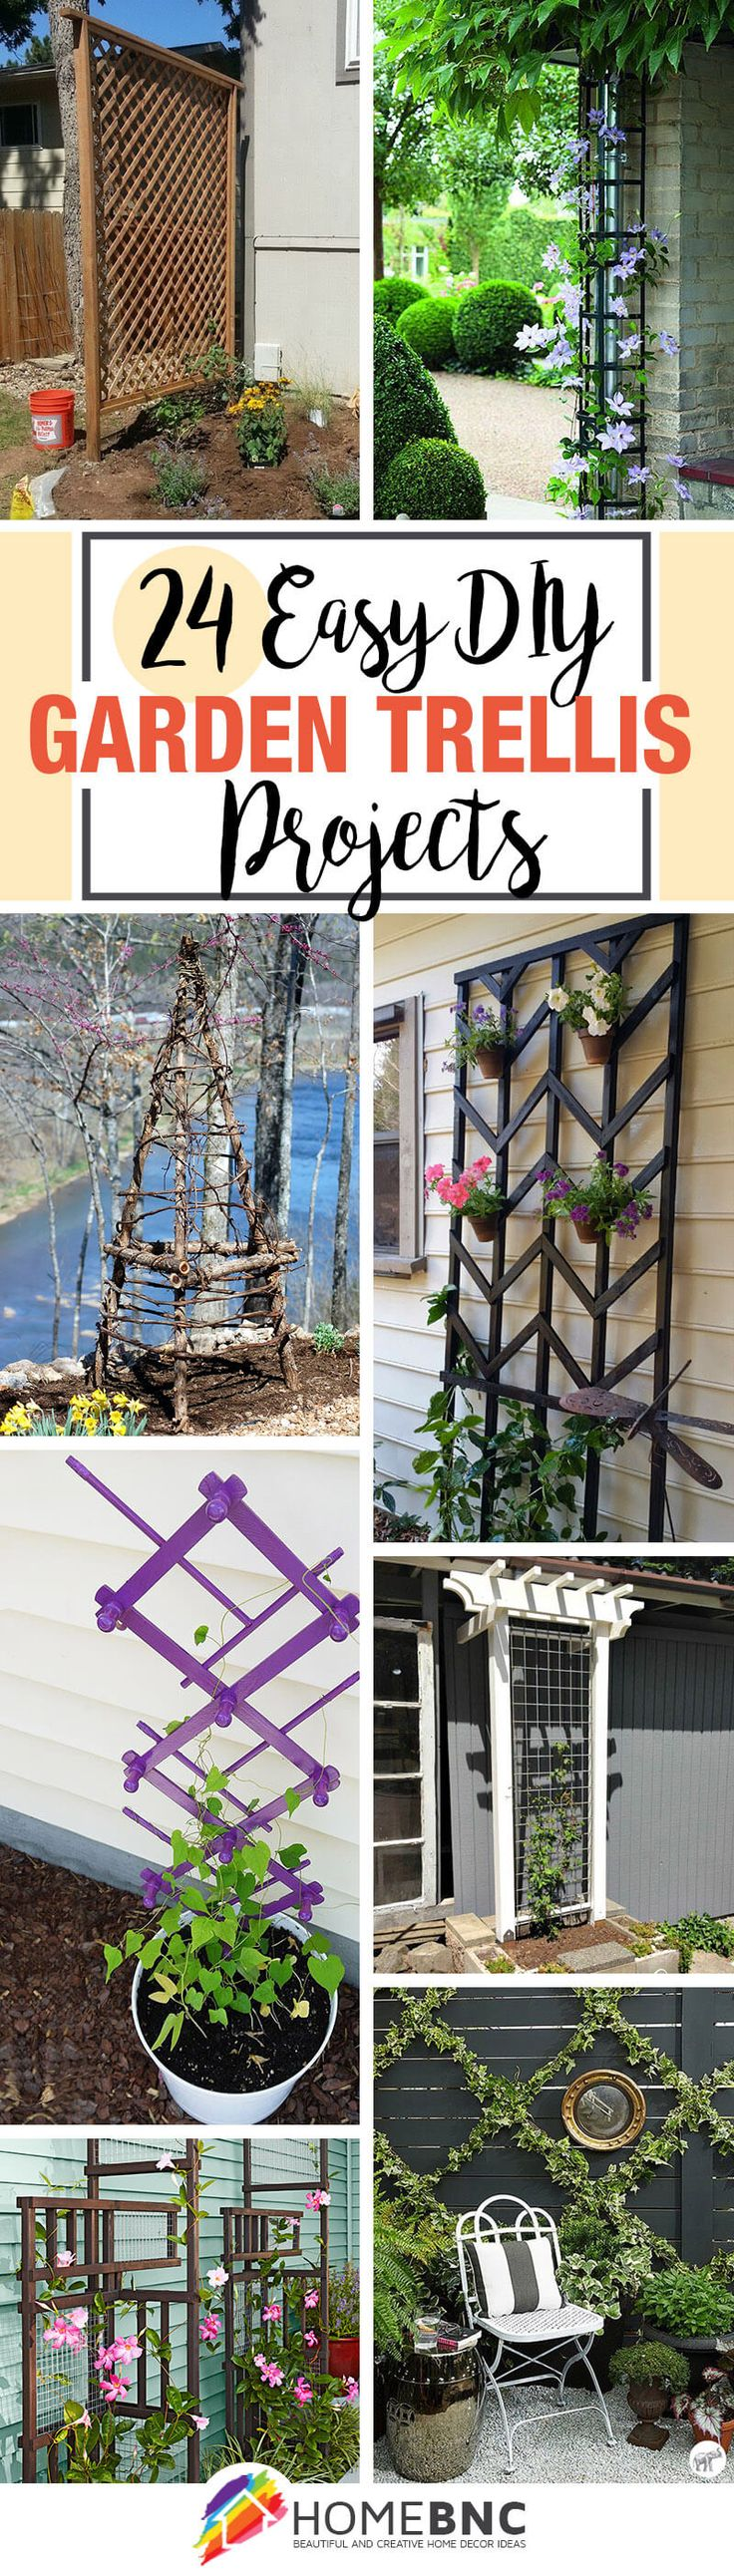 DIY Garden Trellis Projects-BY HOMEBNC-DIY garden trellis projects are a simple way to provide your vining plants with vertical growing space. Adding a trellis to your garden is not only practical but also offers you a perfect opportunity to add some visual interest to your yard.